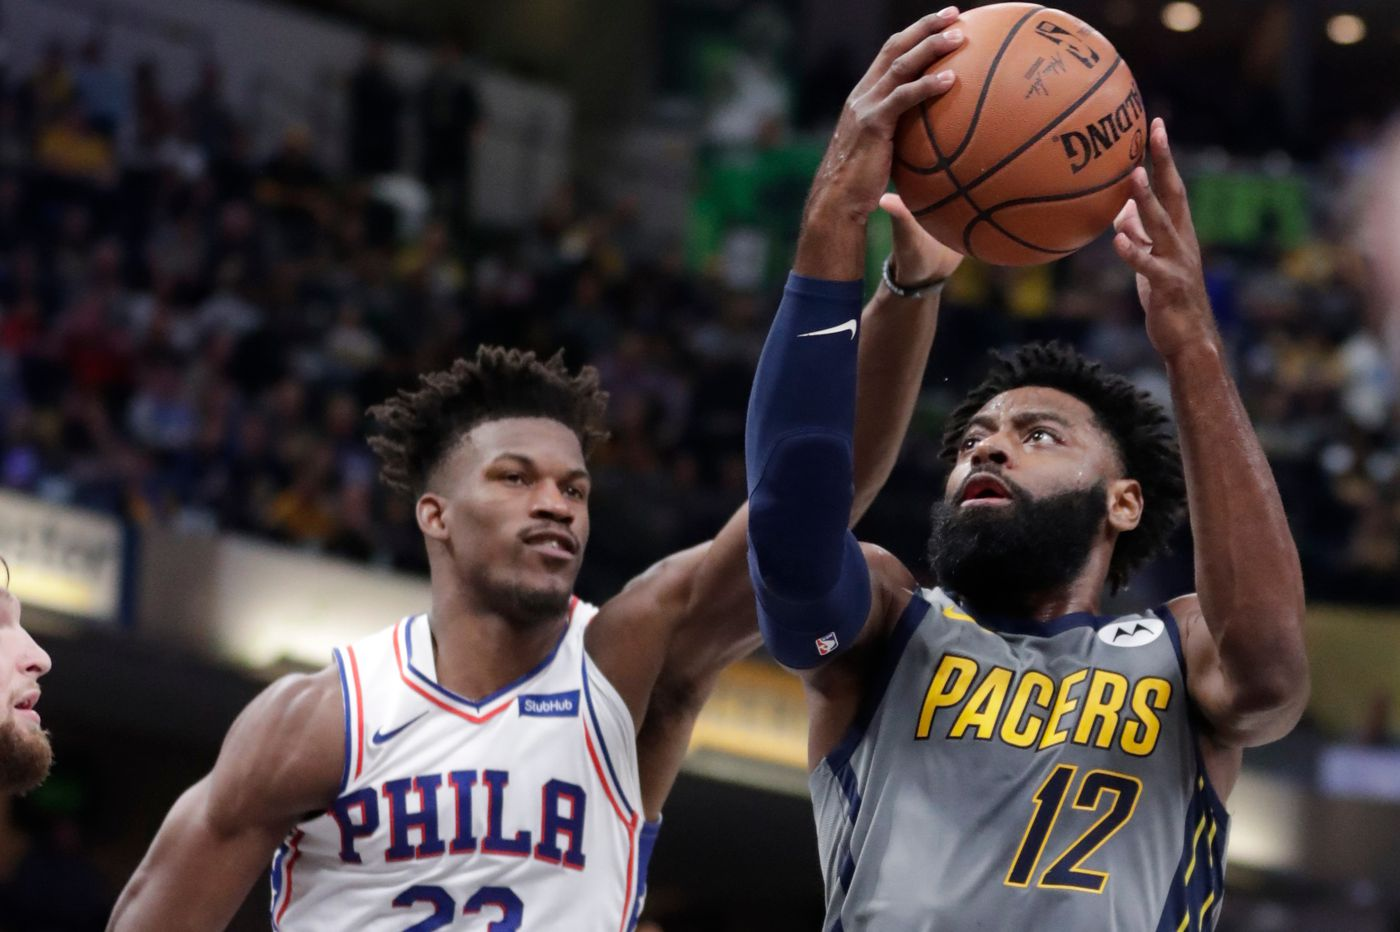 Sixers-Pacers observations: Solid chemistry, stellar bench play